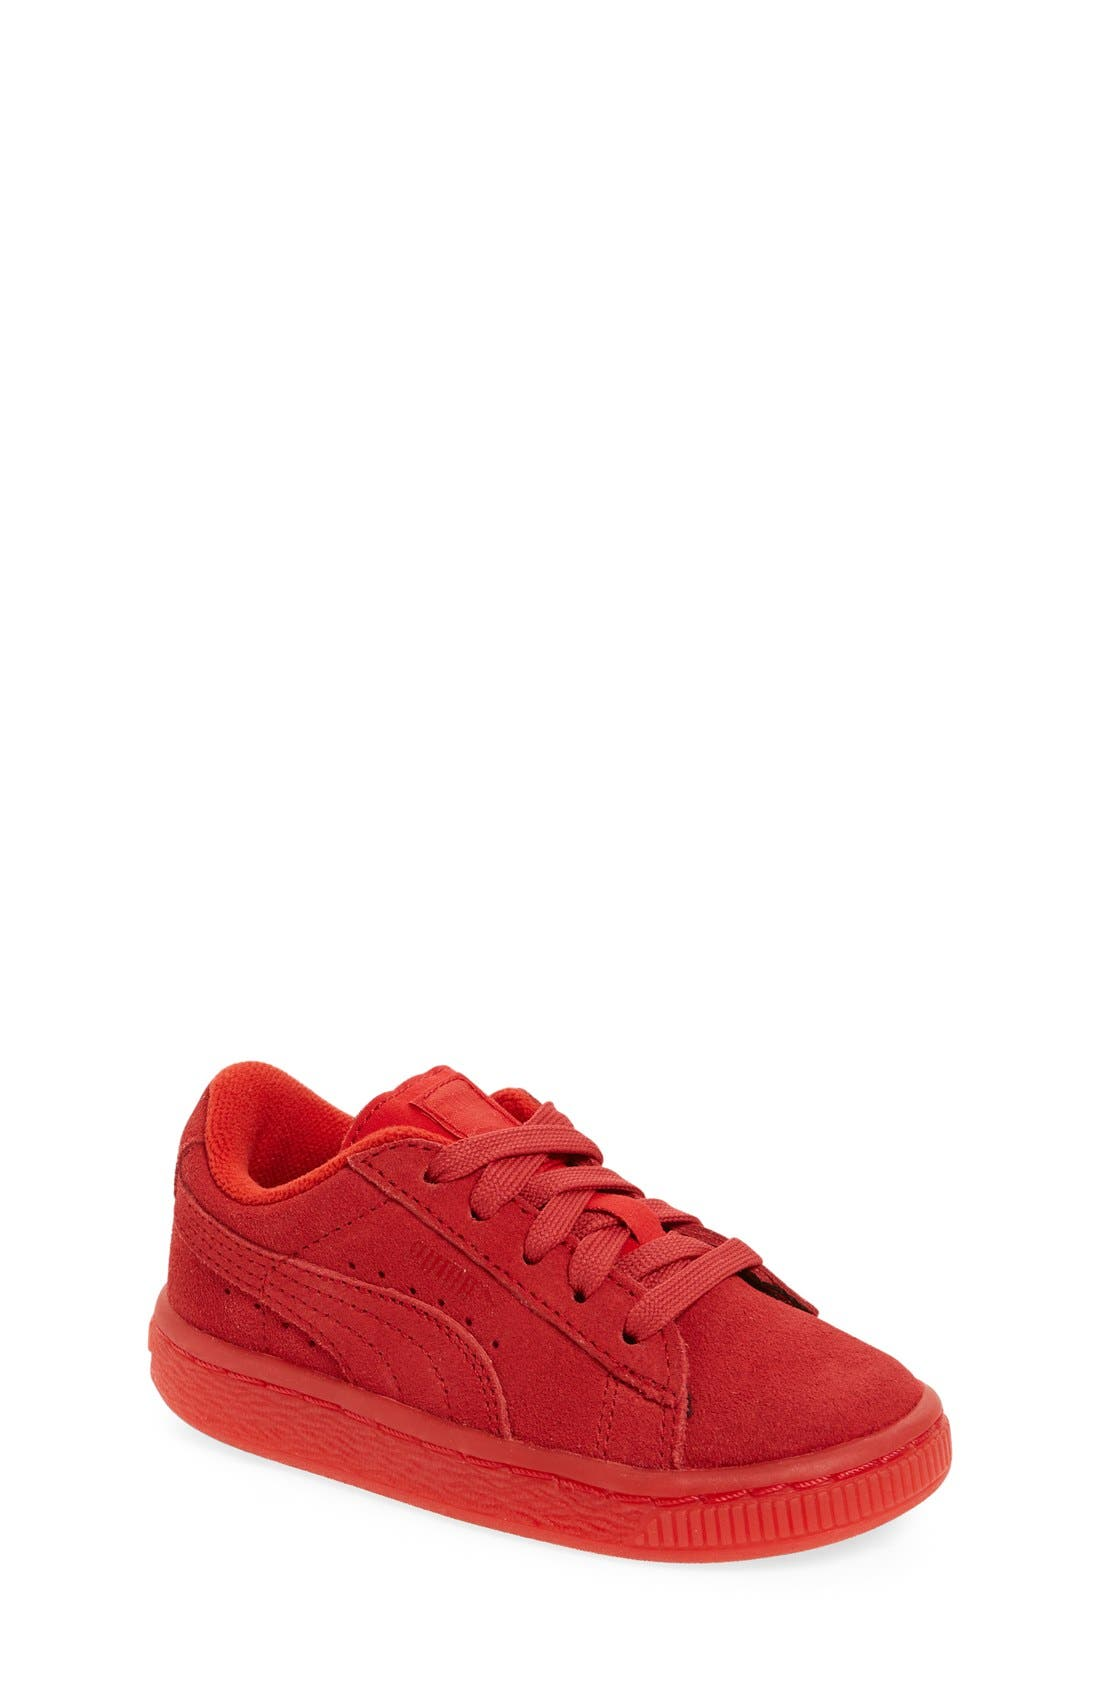 'Suede Iced' Sneaker,                             Main thumbnail 1, color,                             Red